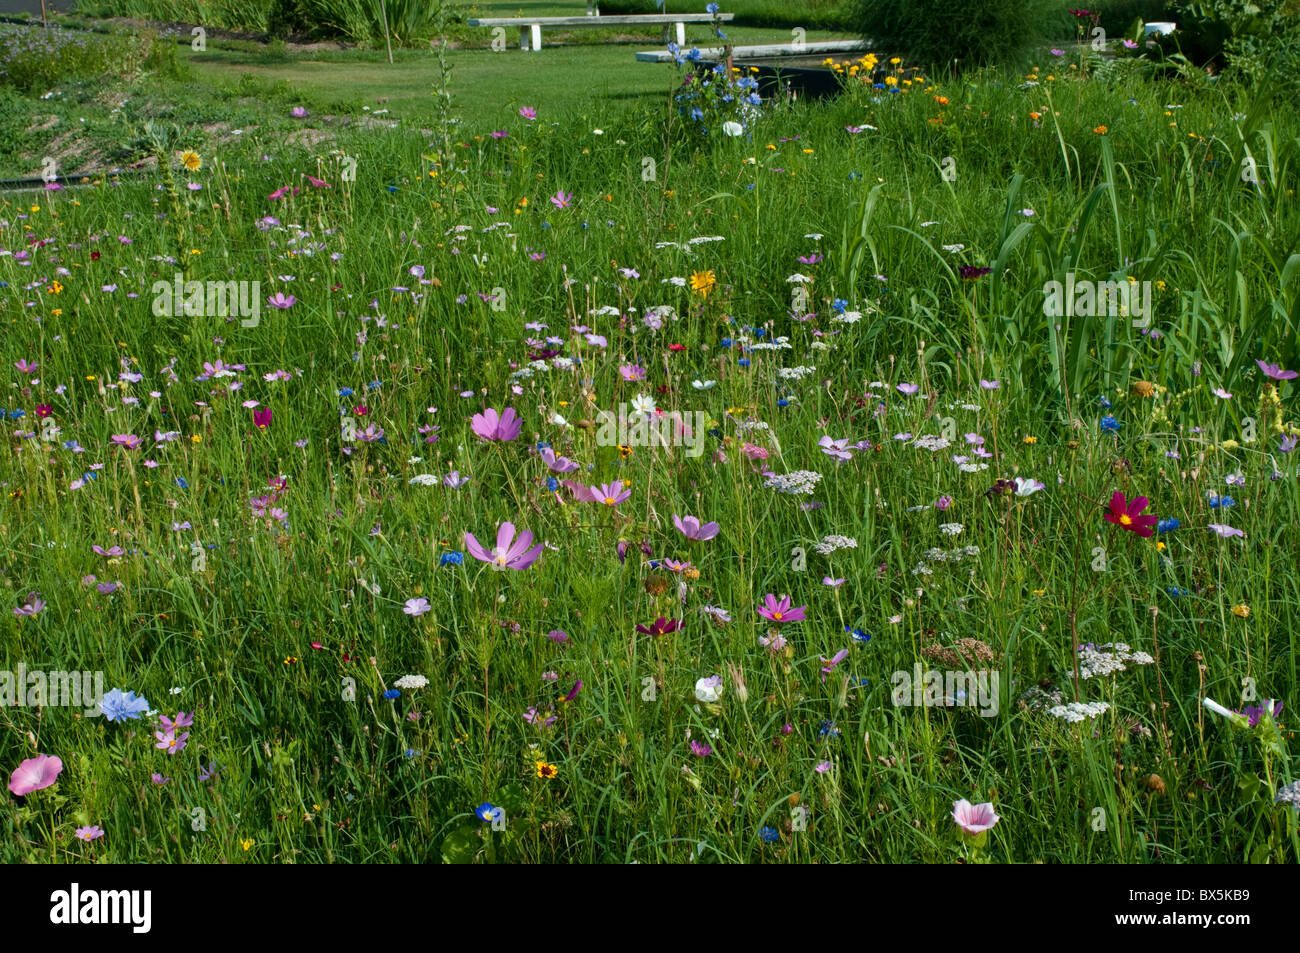 Meadow with summer flowers, Botanical Garden, Bordeaux, France - Stock Image